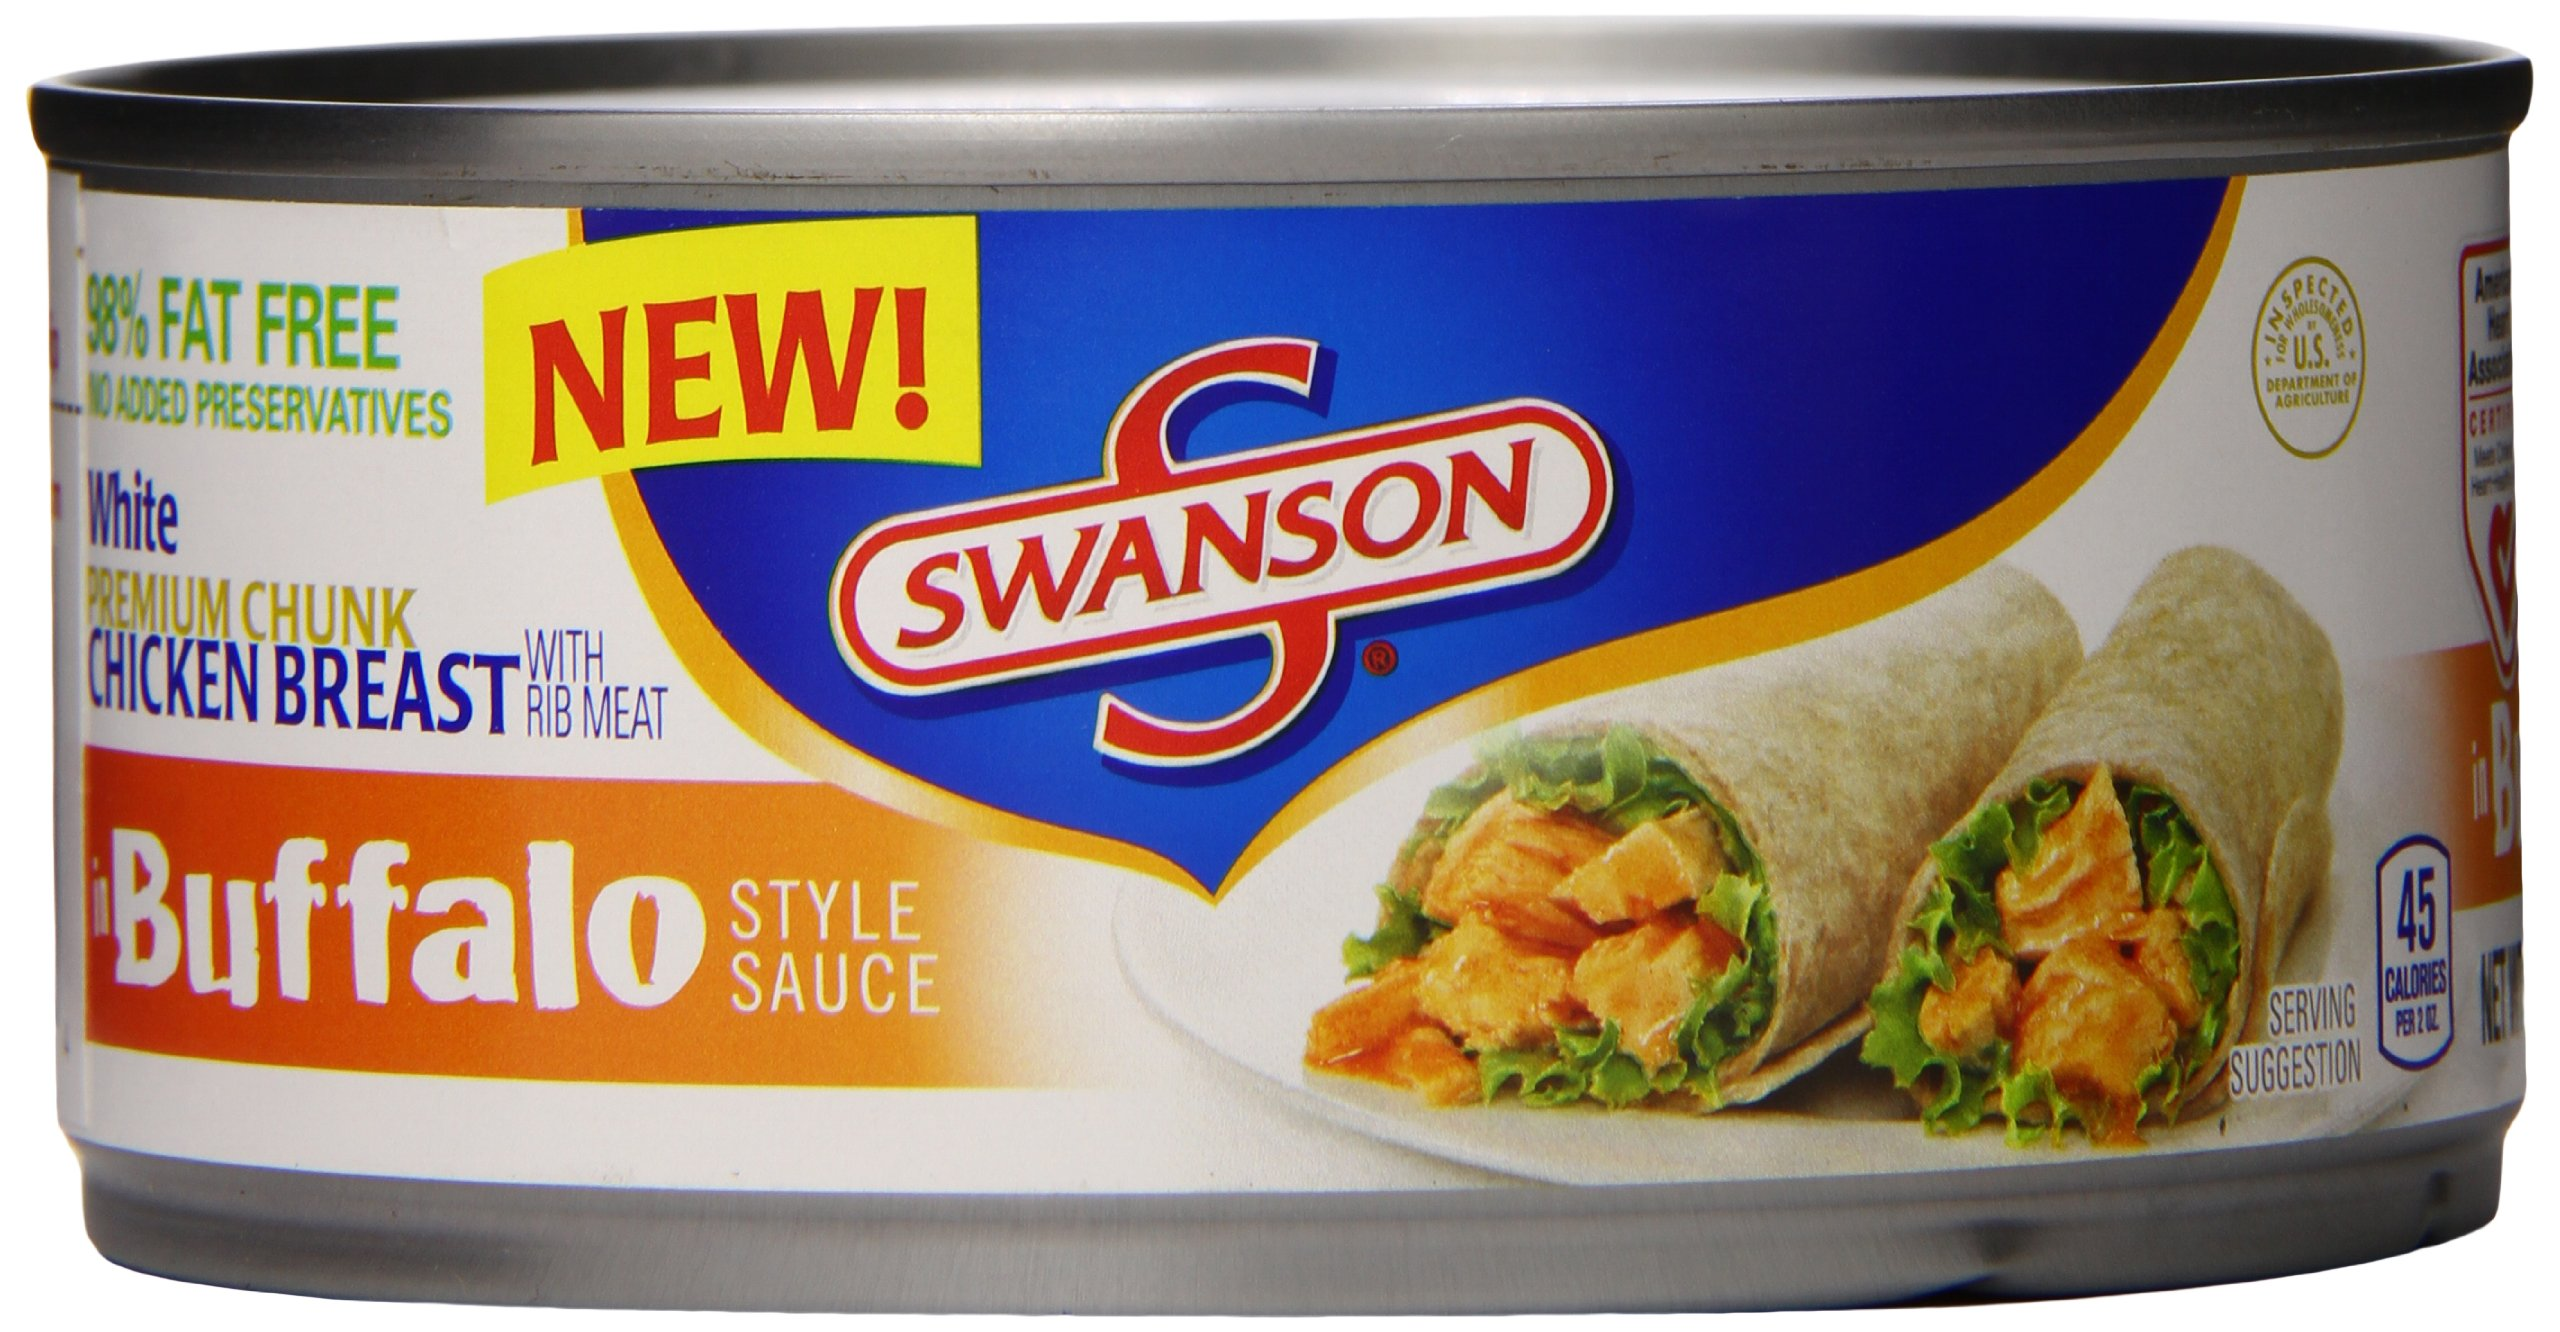 Swanson White Premium Chunk Chicken Breast, in Buffalo Style Sauce, 9.75 Ounce (Packaging May Vary)